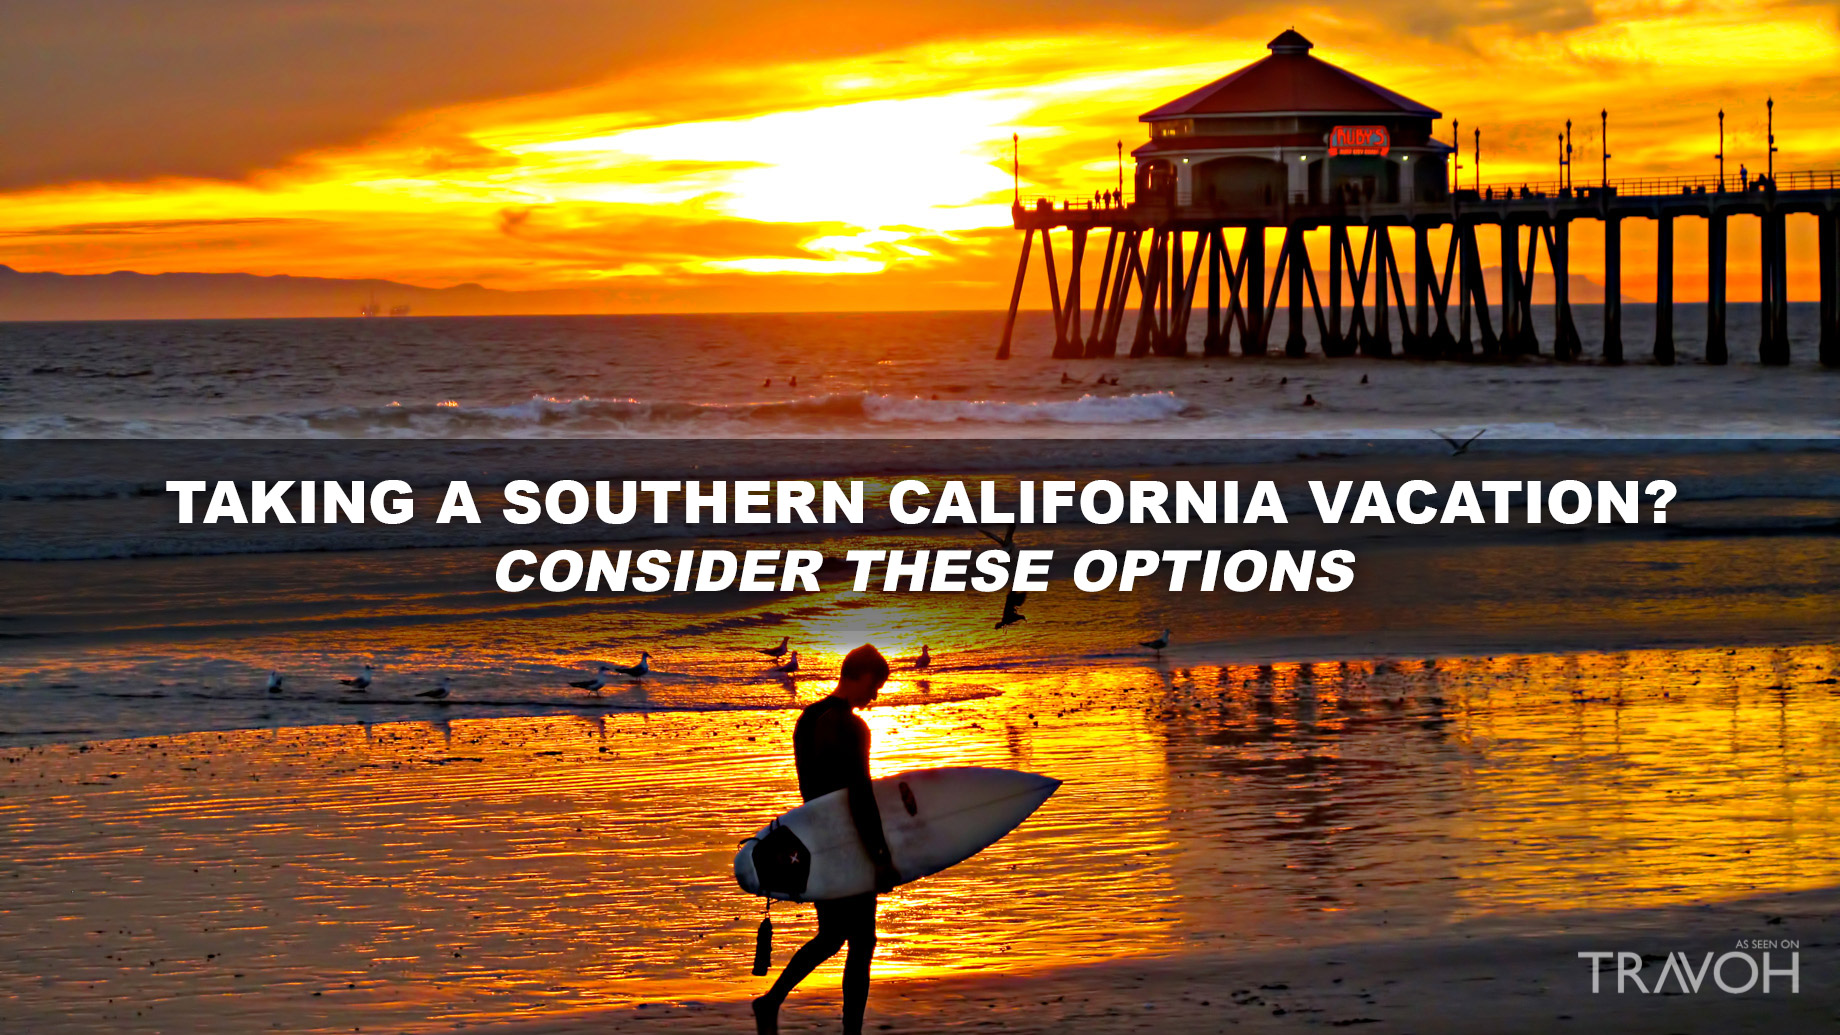 Taking a Southern California Vacation? Consider These Options